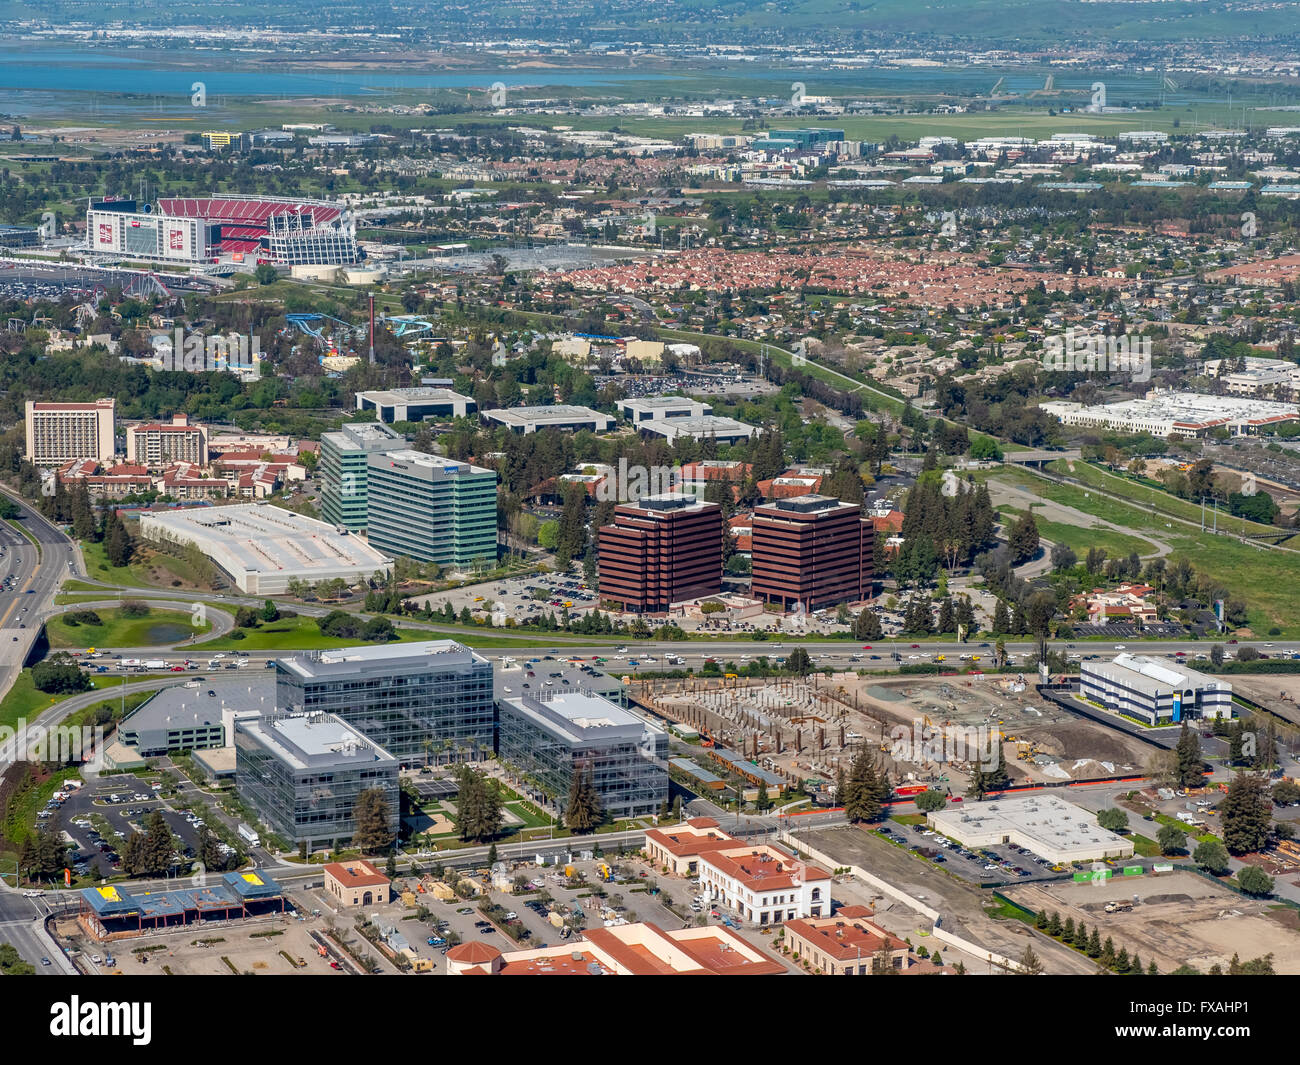 Headquarters of Vishay Americas inc. Broadcom ca technologies, Sophos, Silicon Valley, California, USA - Stock Image